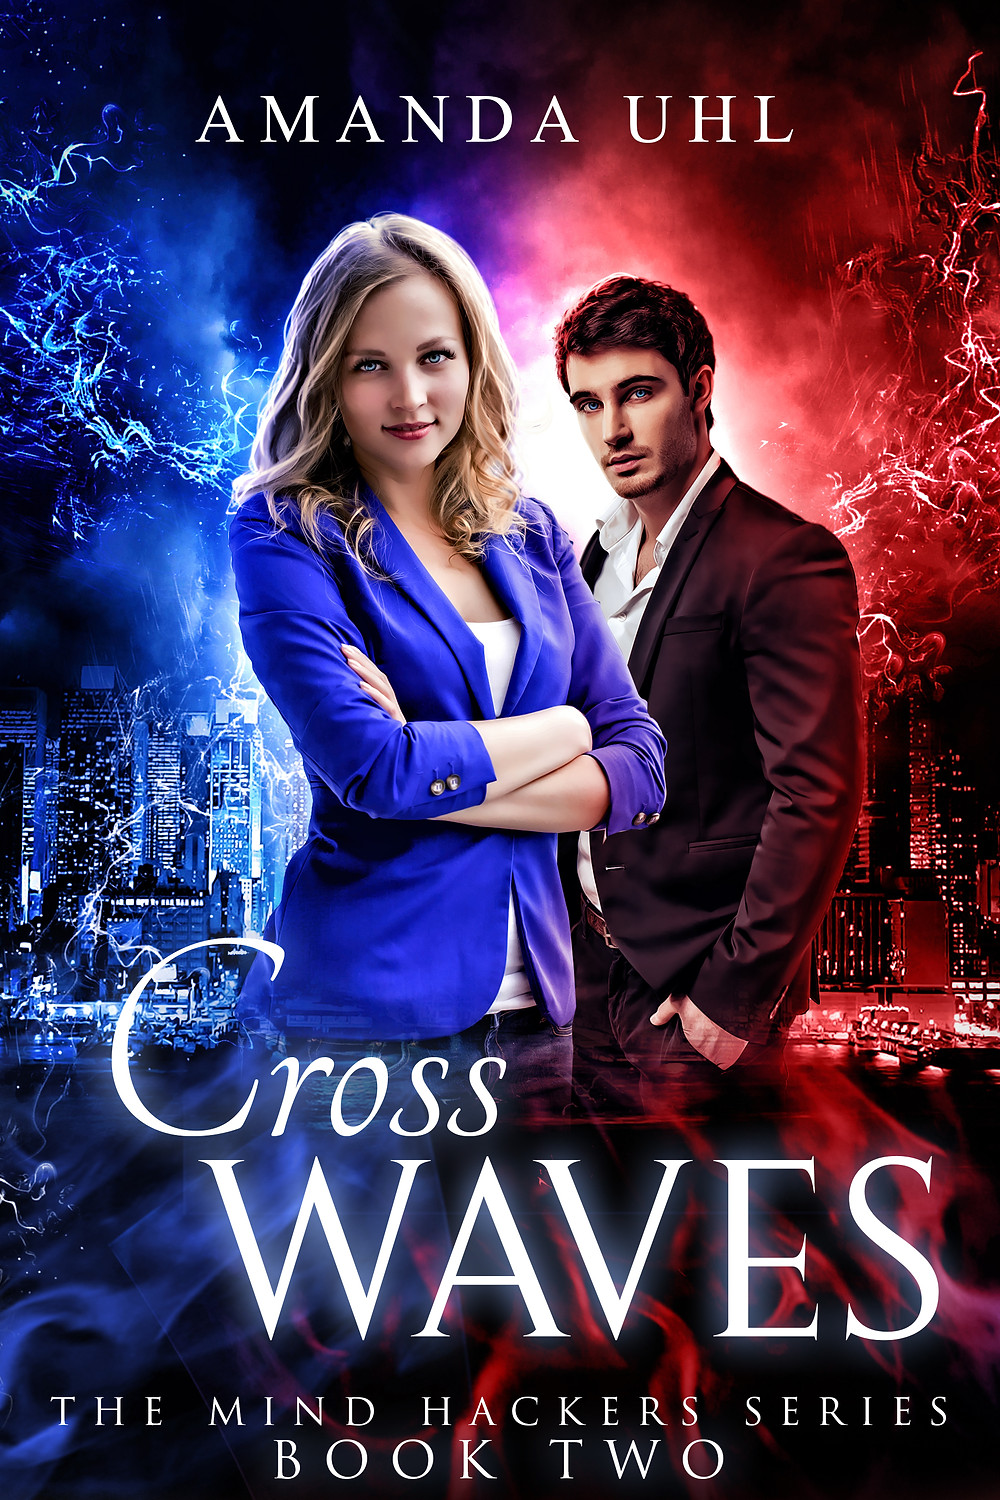 Cross Waves by Amanda Uhl - The Mind Hackers Series